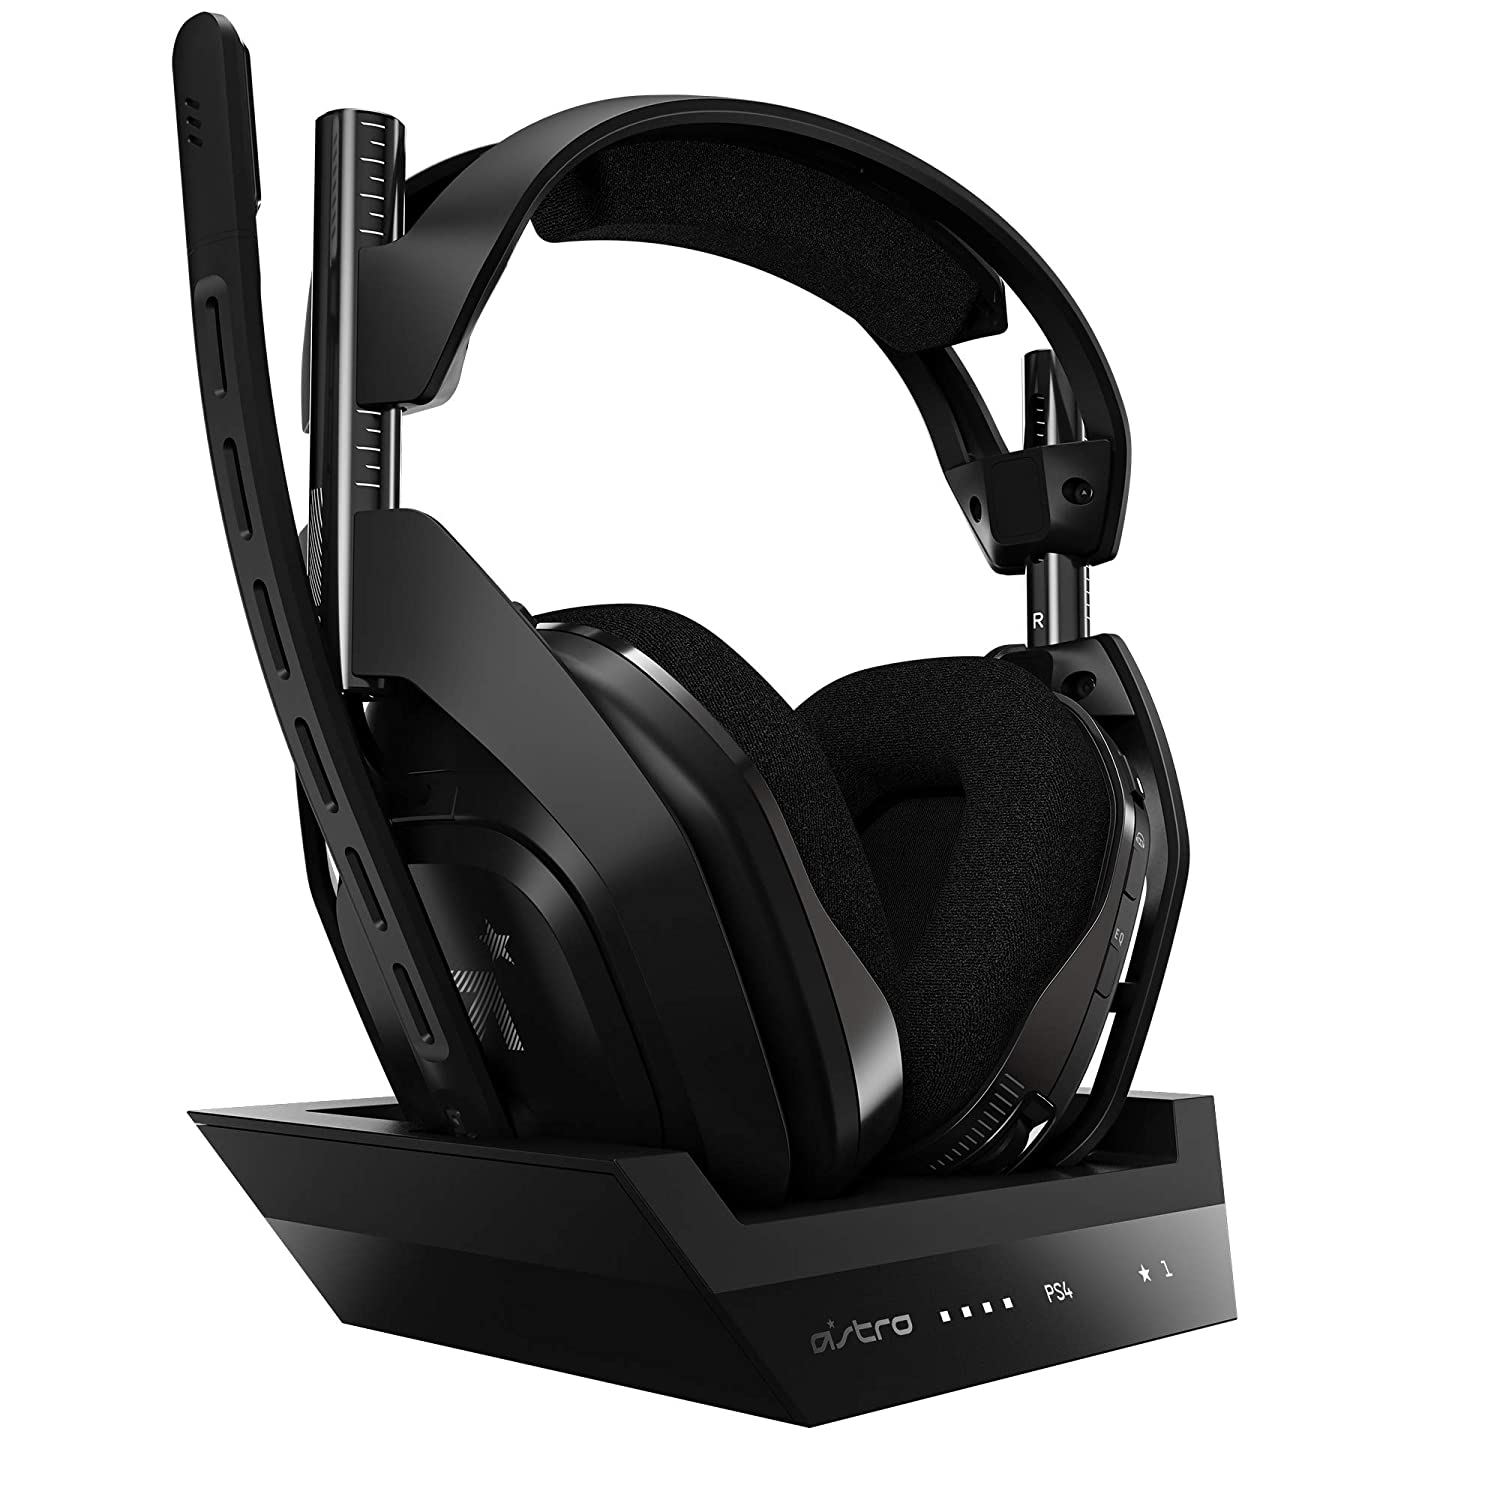 ASTRO Gaming A50 Wireless + Base Station for PlayStation 4 & PC - Black/Silver (2019 Version)